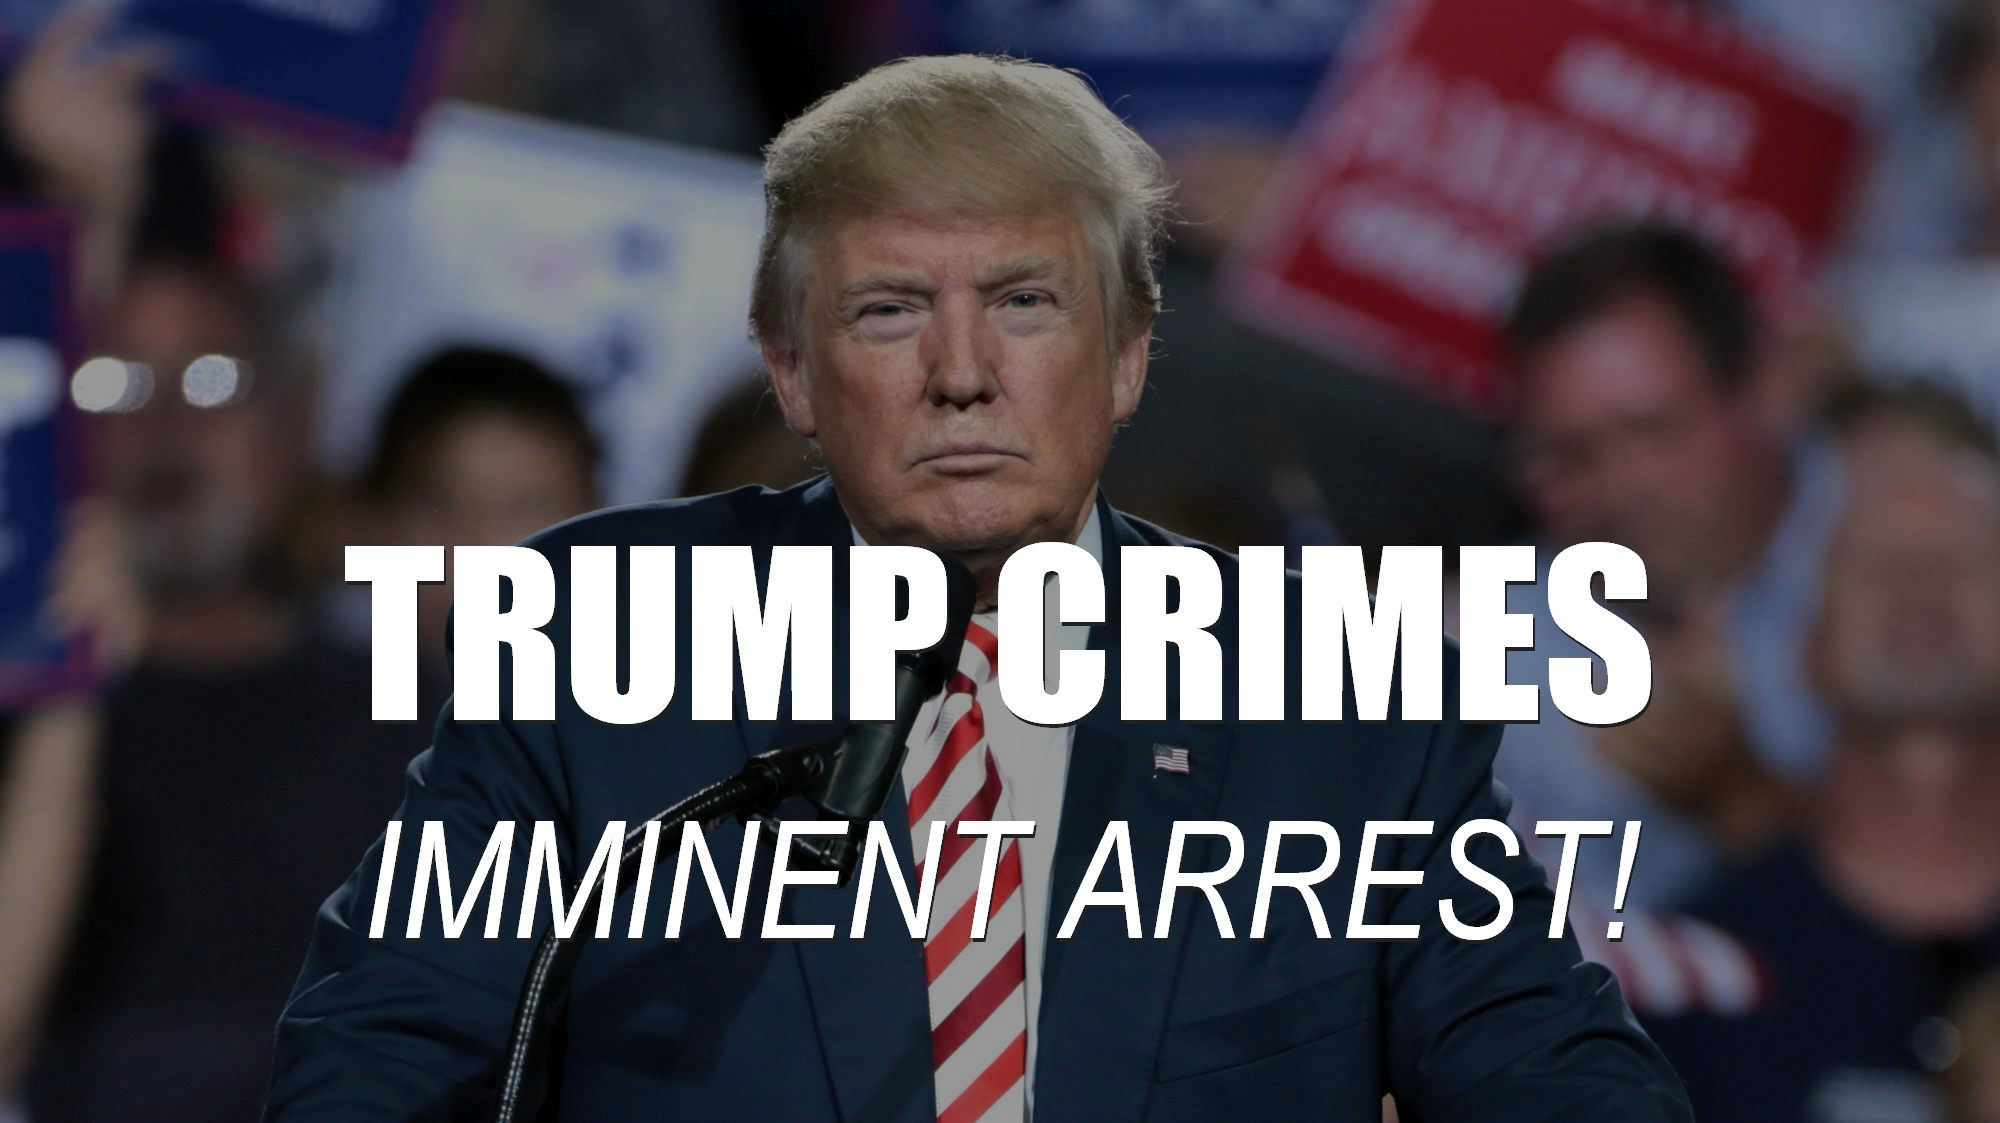 When will Trump be subpoenaed, indicted, arrested and sent to jail. We know when it will happen.